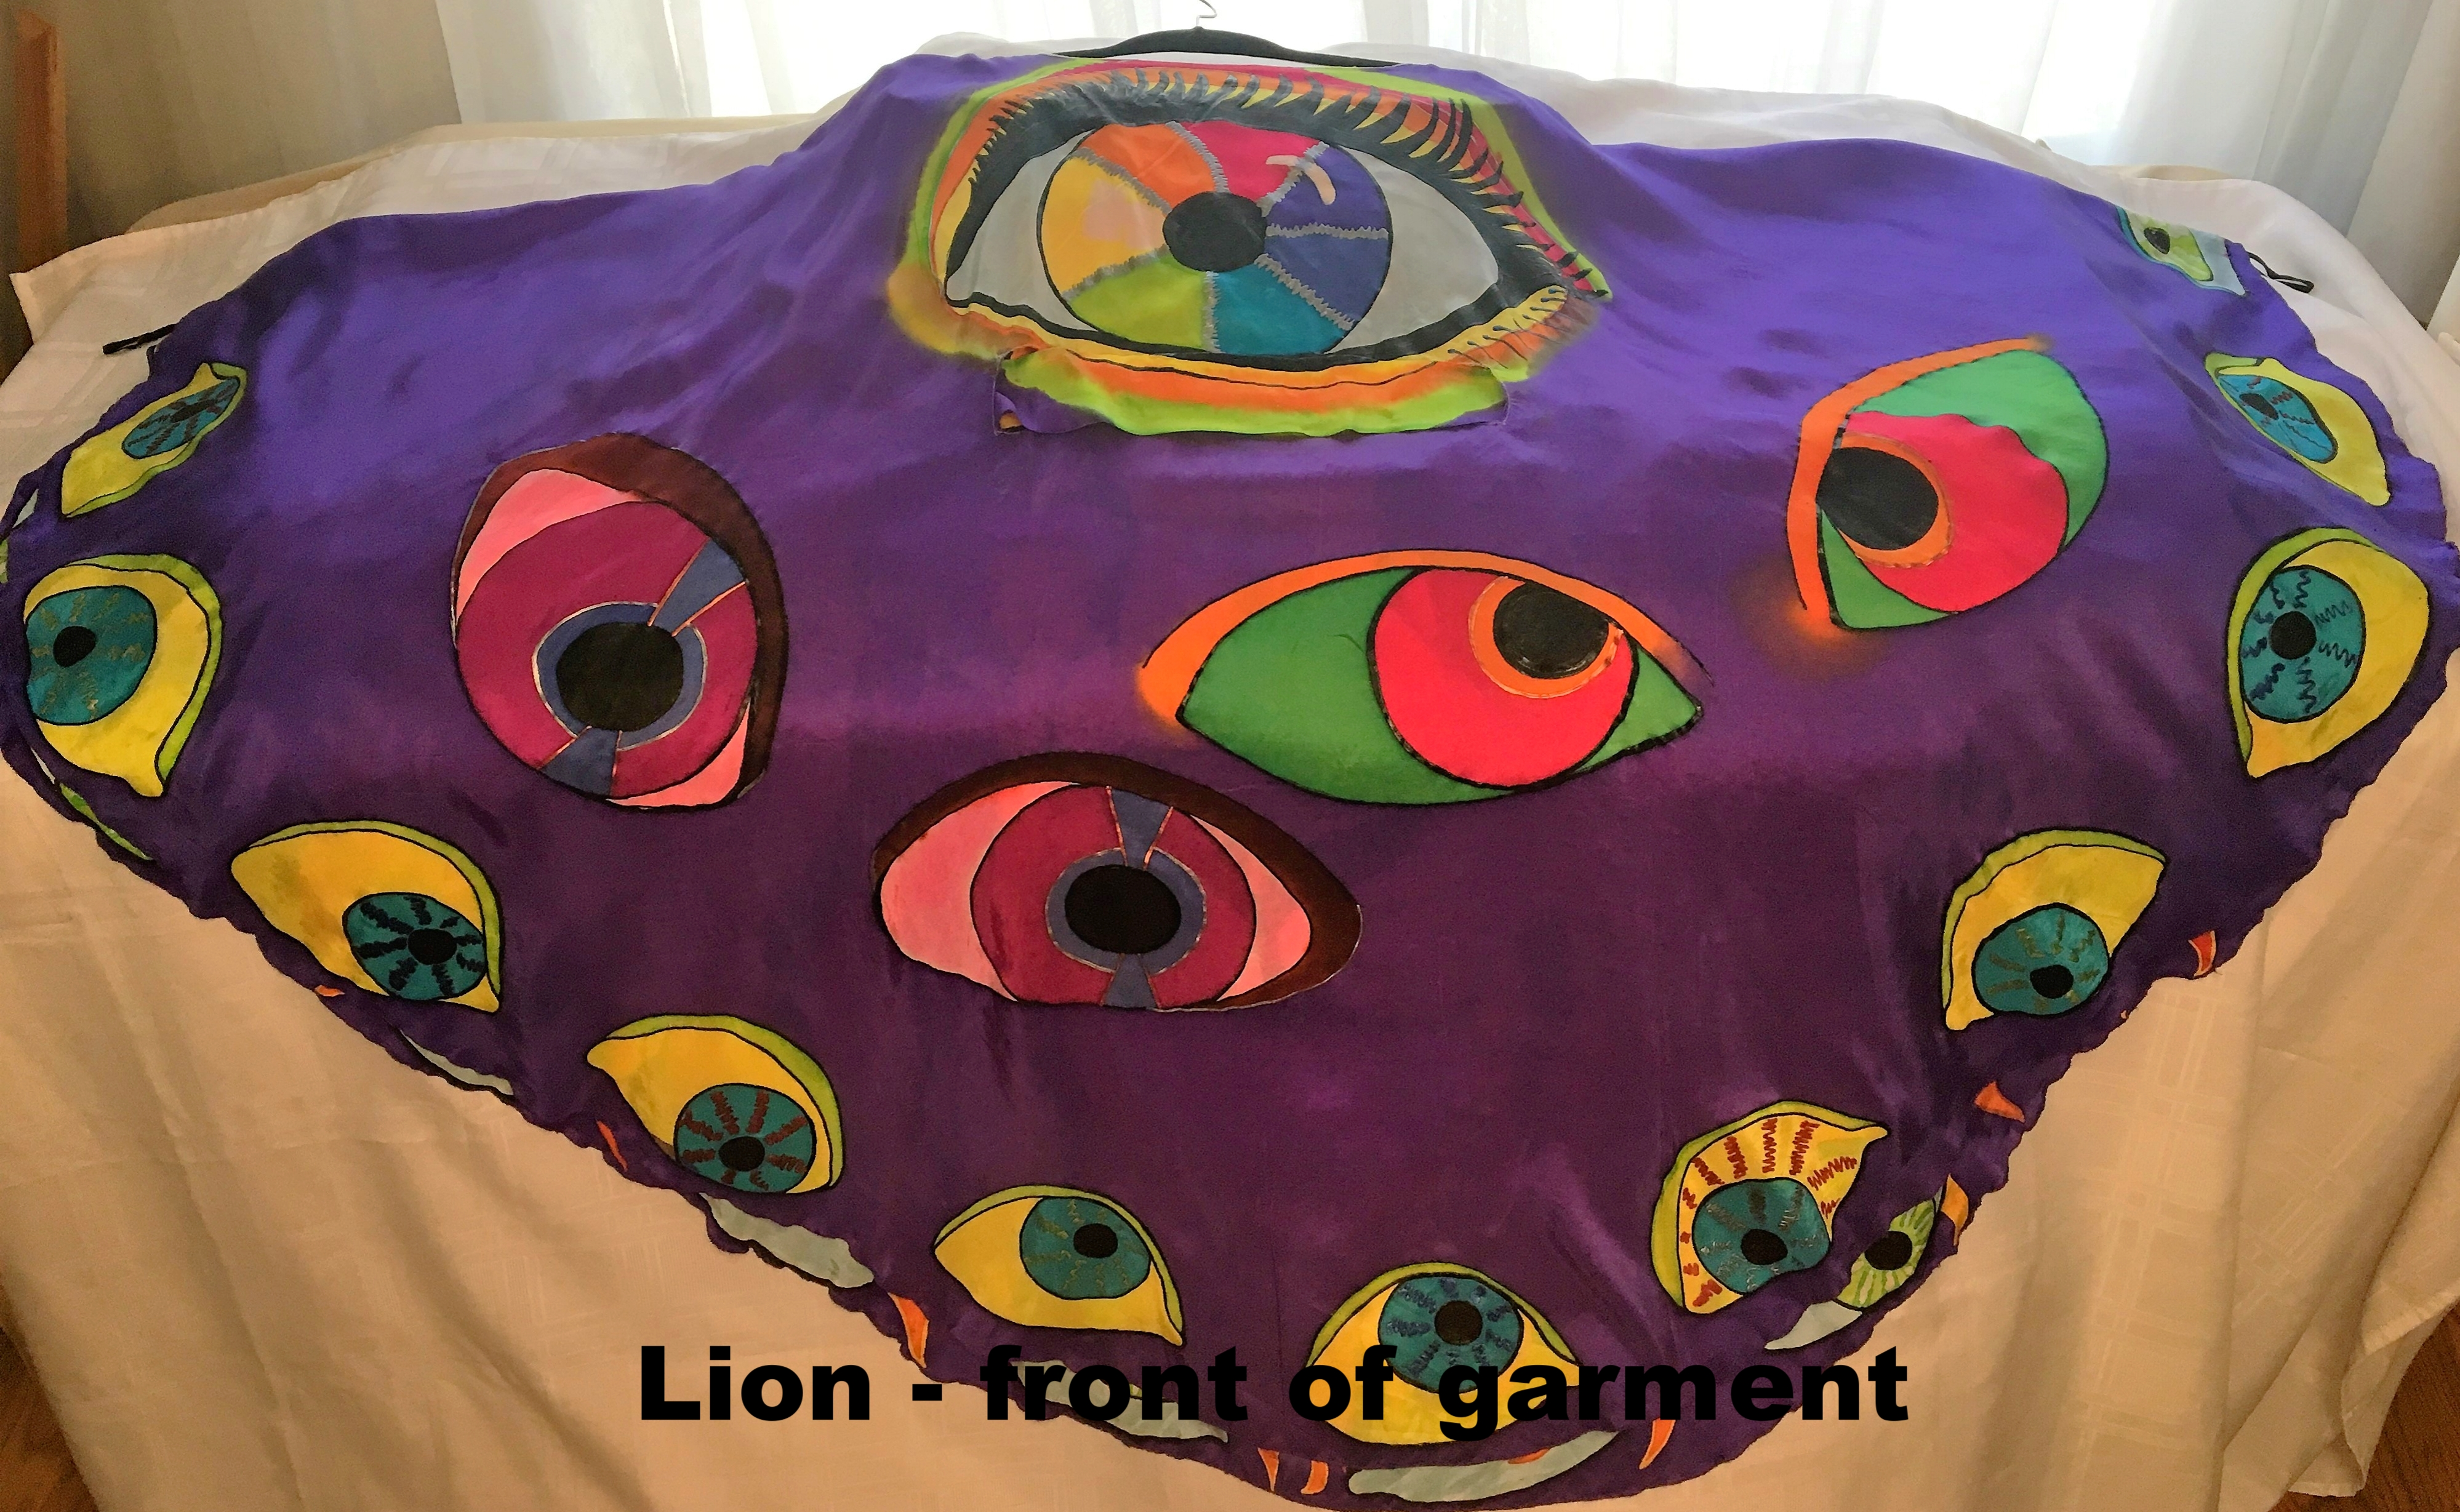 Purple cape garment showing a big eye and many small eyes